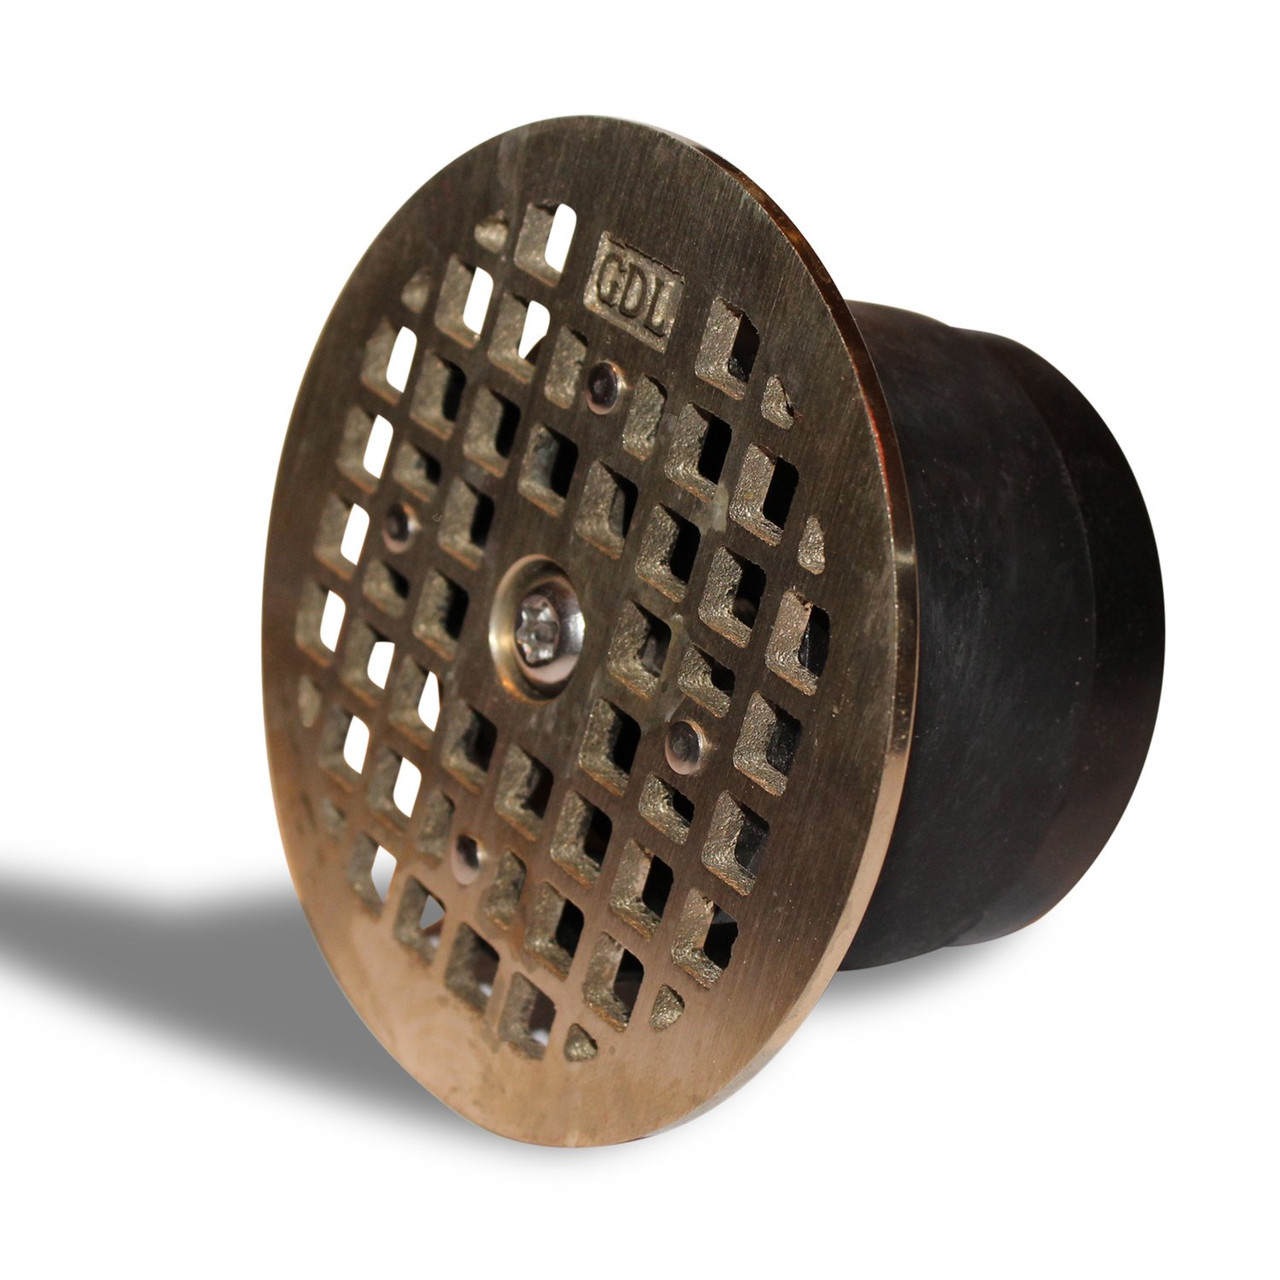 LockOut - Locking Floor Drain Replacement Grate With Odor and Bug Blocking Valve | Blocks Sewer Gas Odors, Bugs, and Locks With A Single Bolt - Round Smith 4.7""